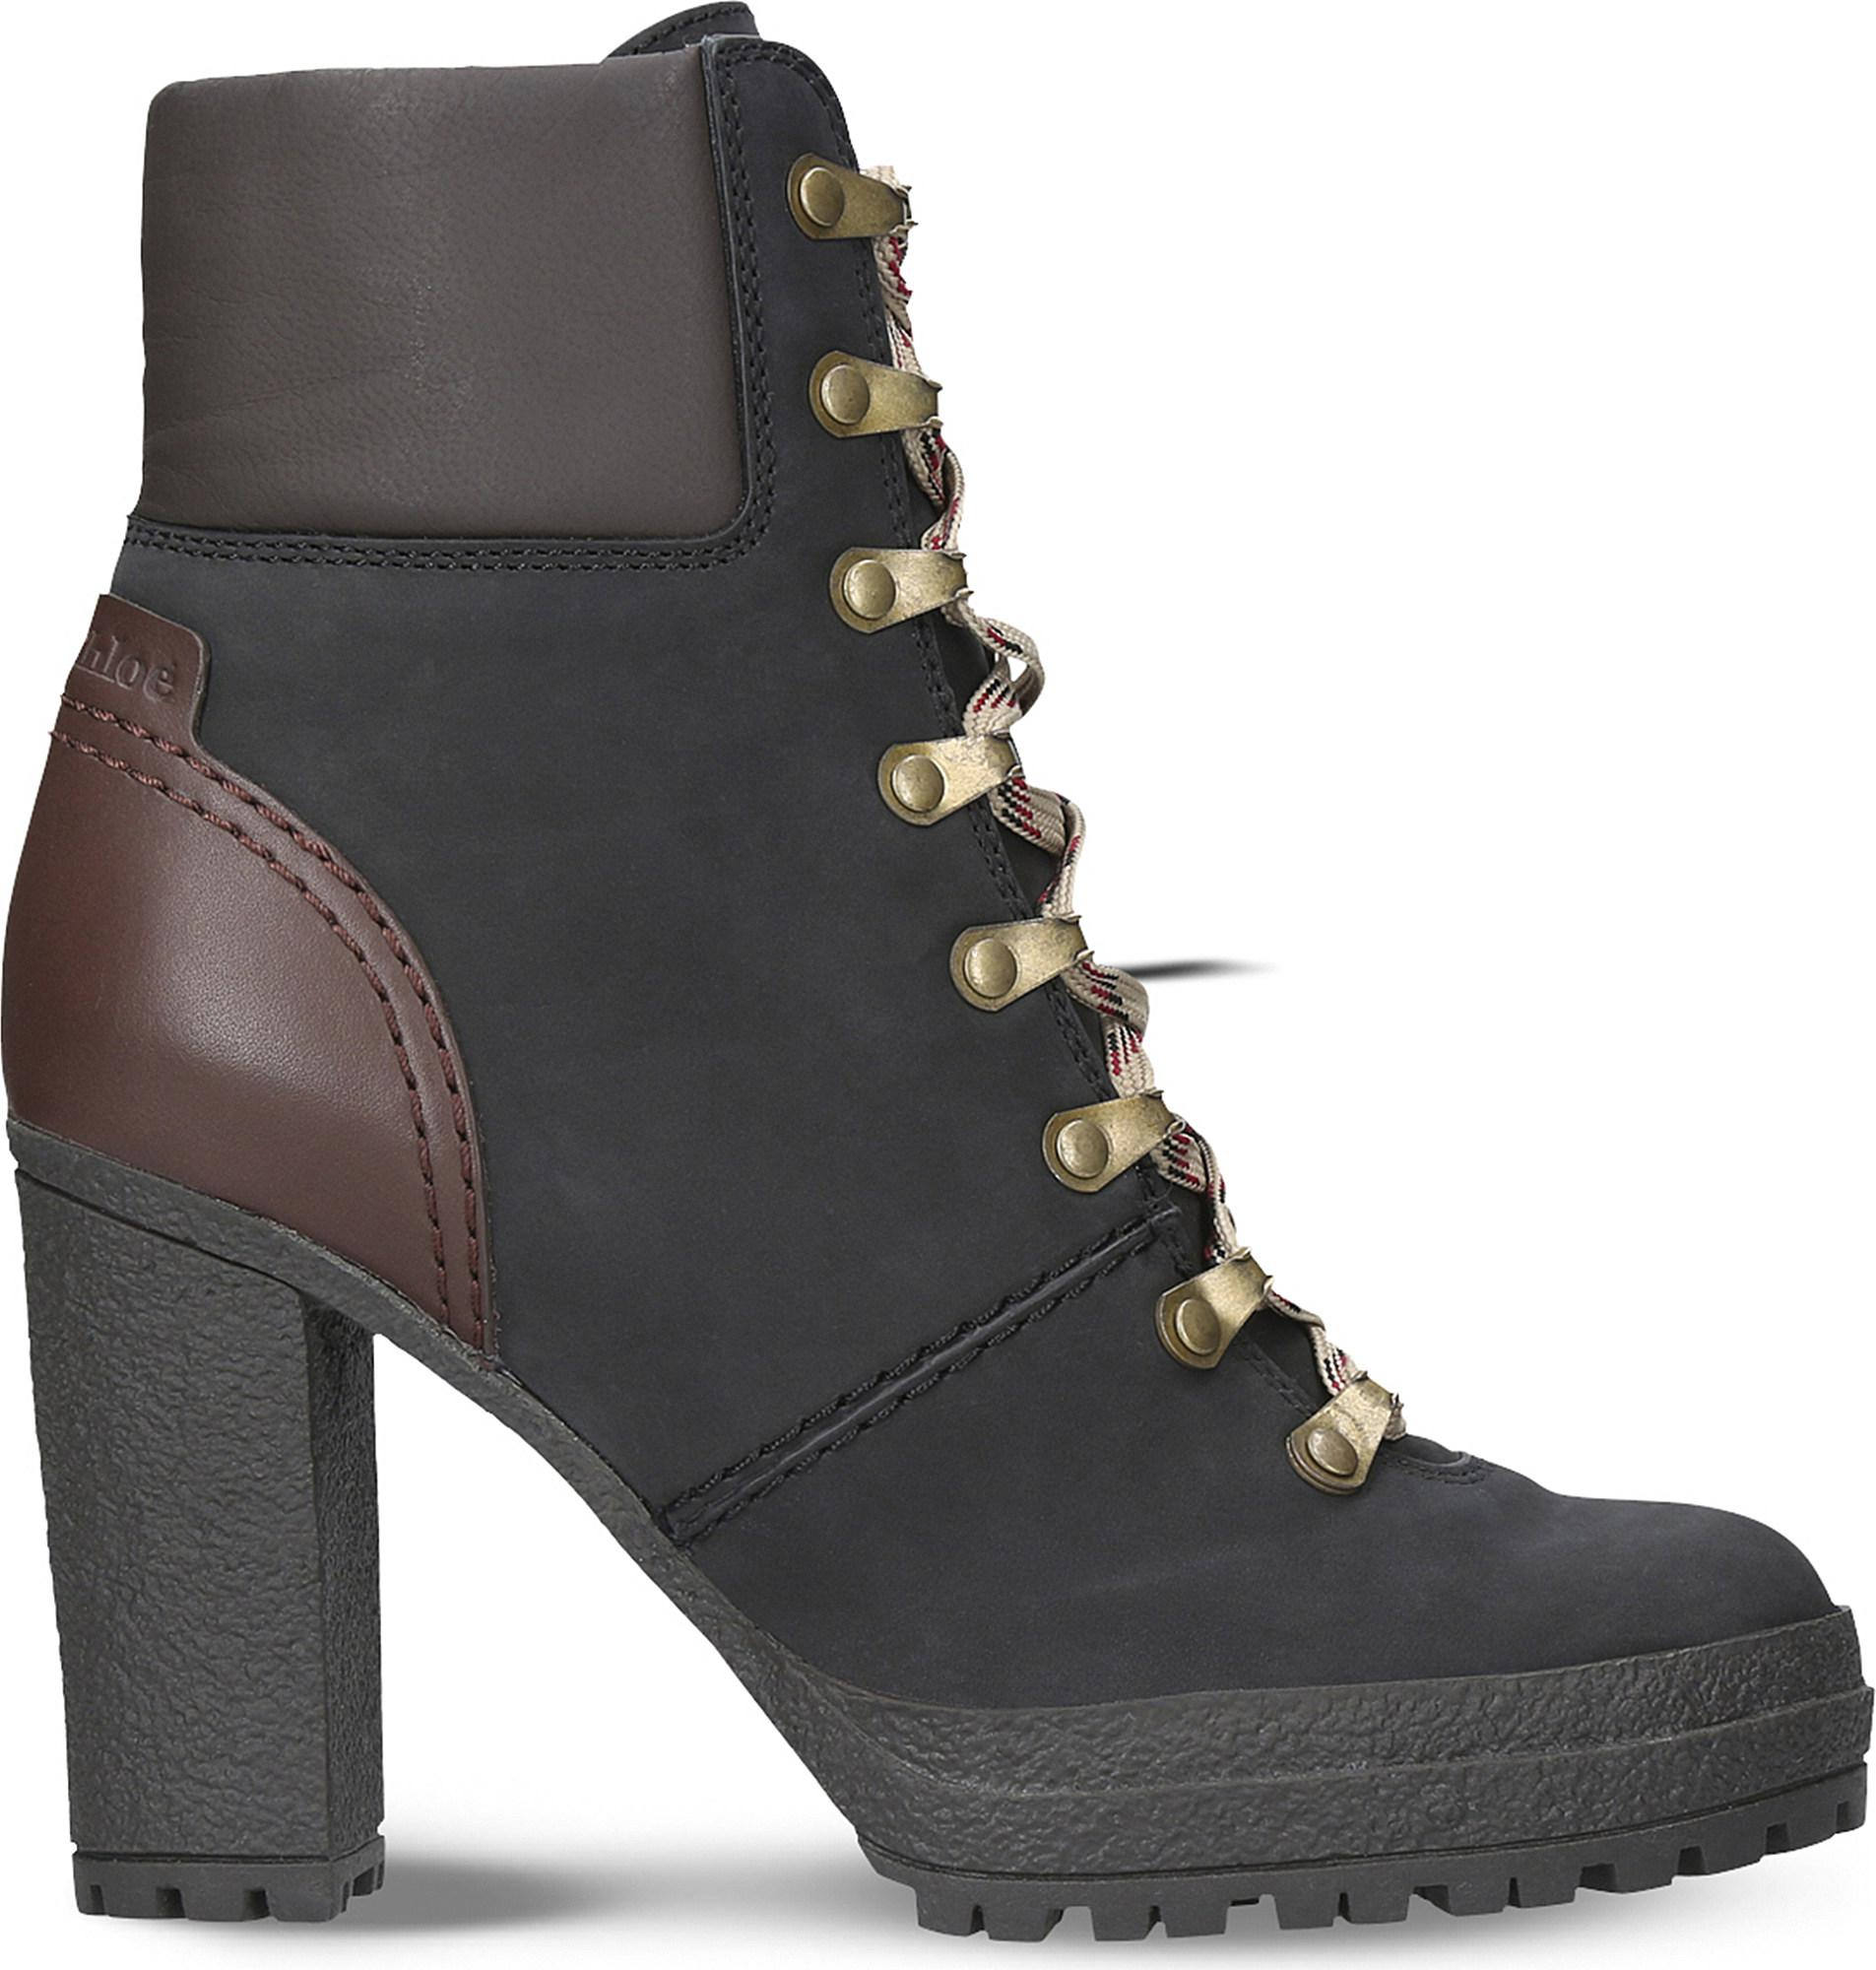 8be51bfa9d7 See By Chloé Black Eileen Heeled Leather Hiking Boots